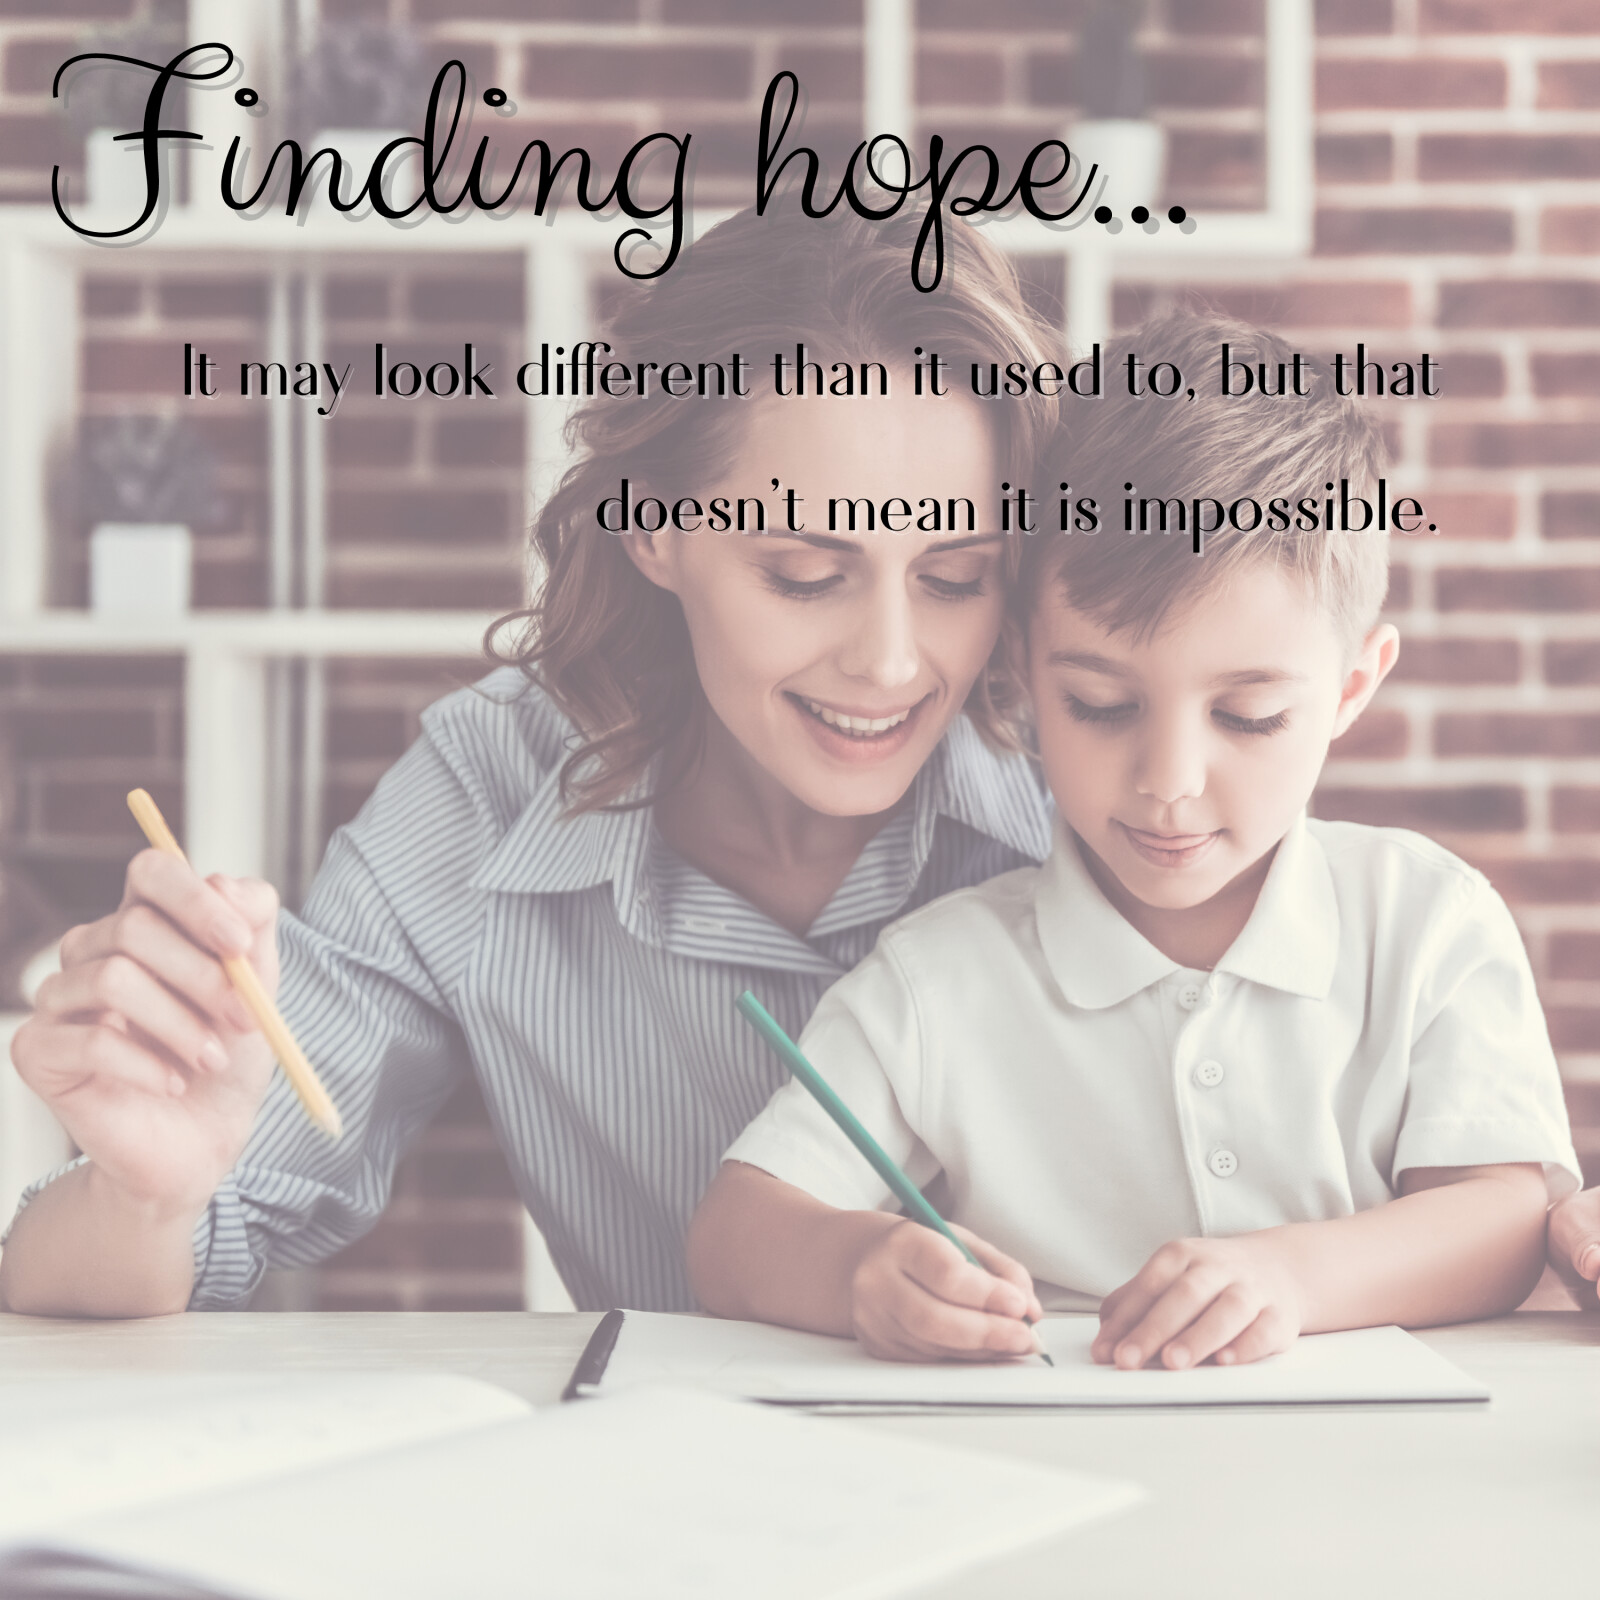 Finding hope...